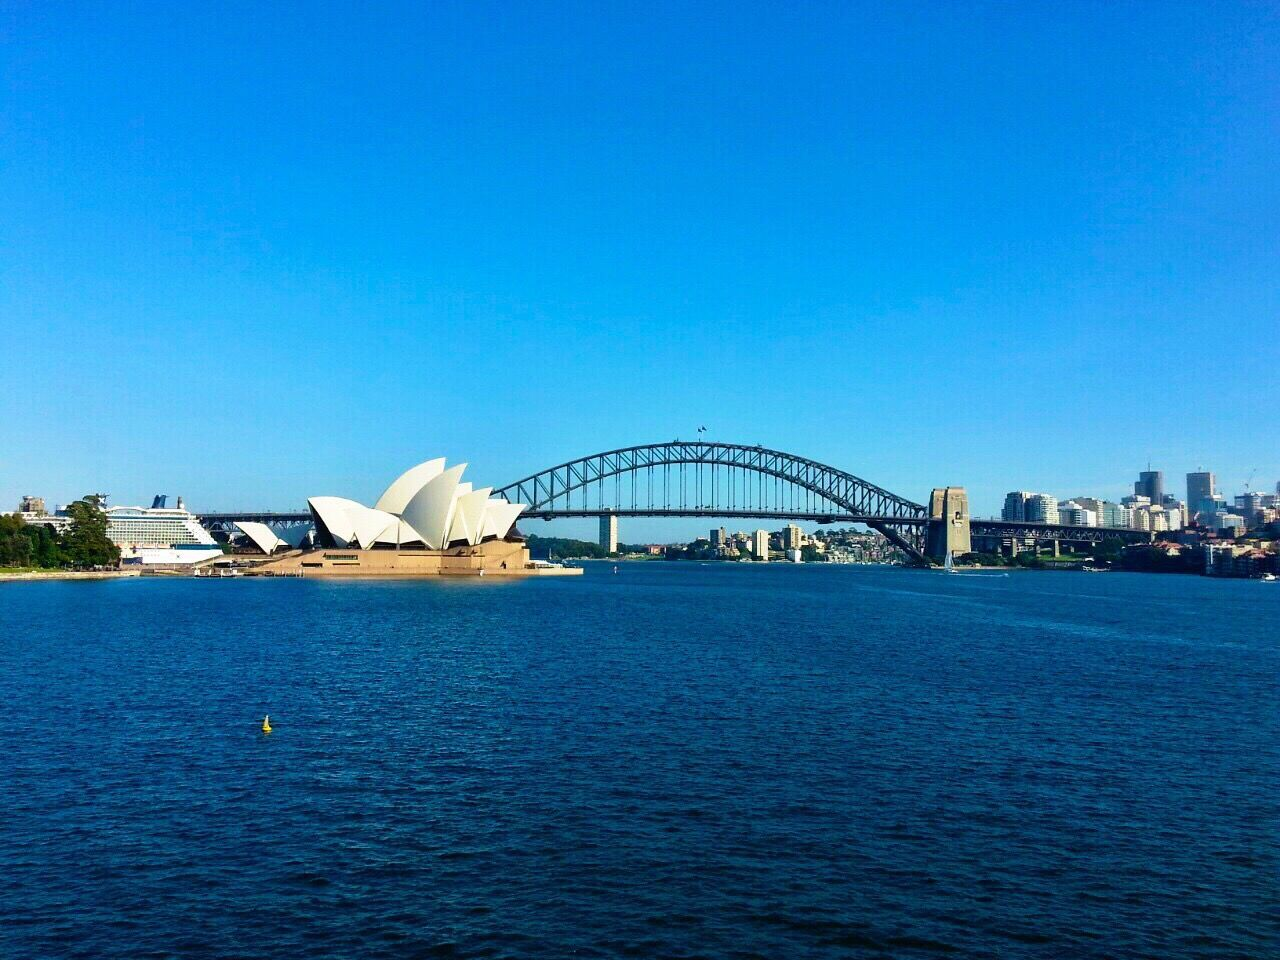 Showcase April Sydney, Australia Enjoying Life ♥ Traveling Sydney Sydney Opera House Sydney Harbour Bridge Sydney Photography Hello World Seeing The Sights Sea And Sky Seascape Relaxing